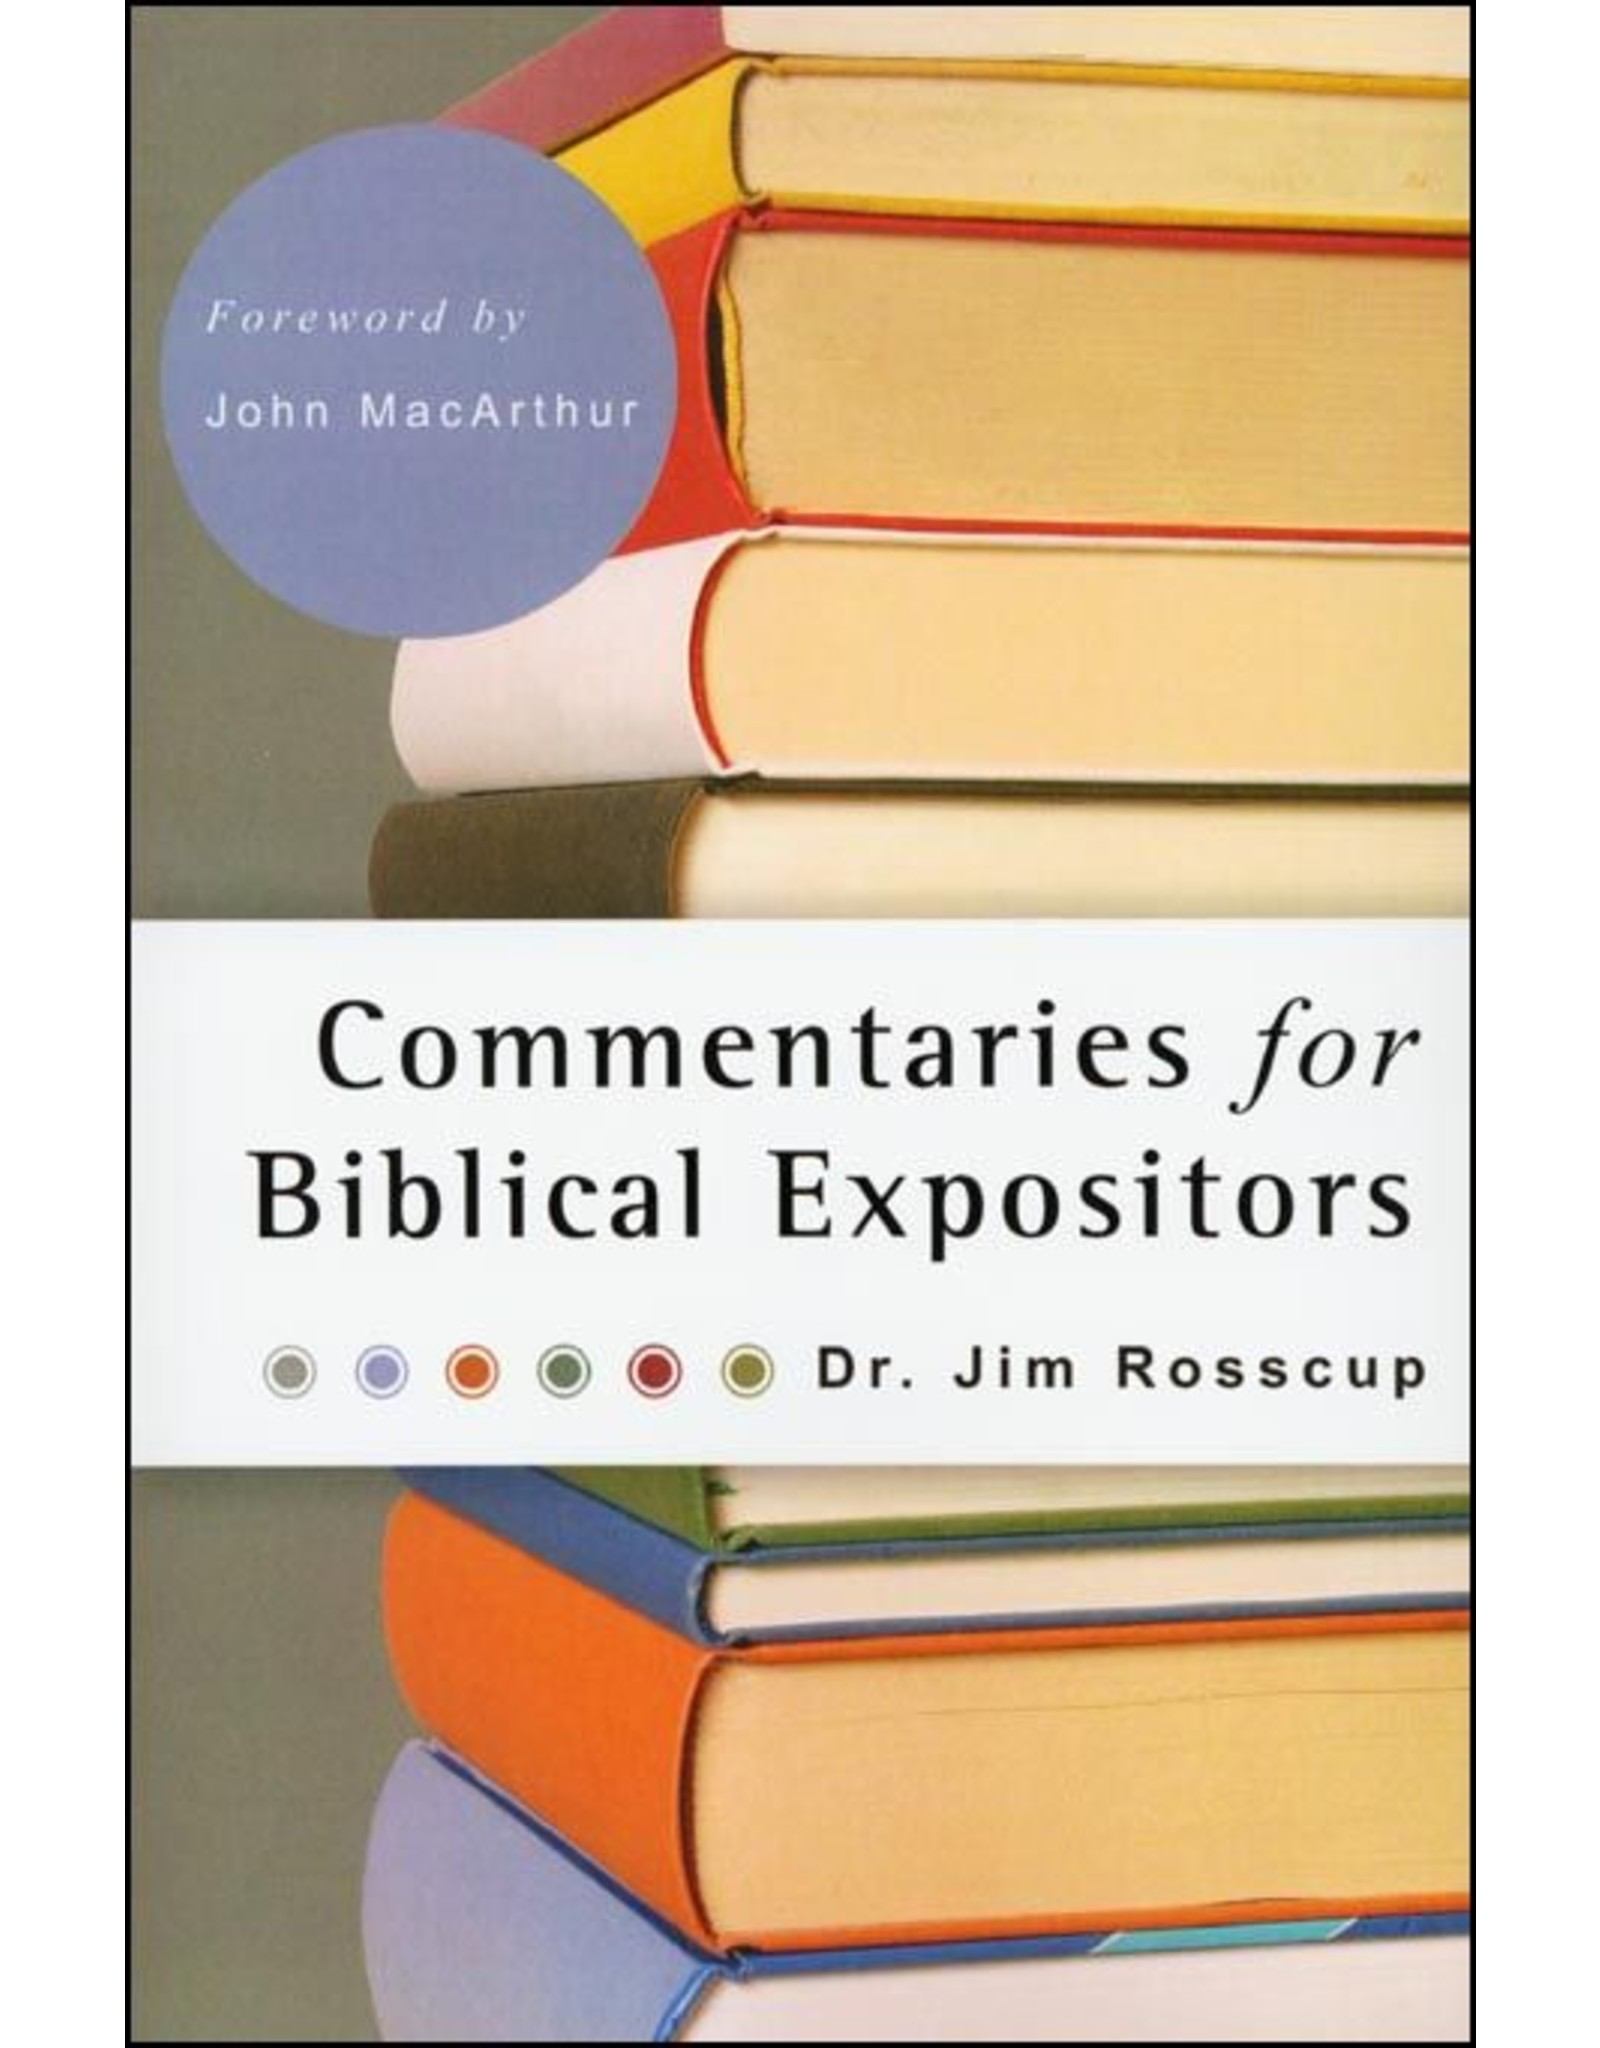 Kress Commentaries for Biblical Expositors